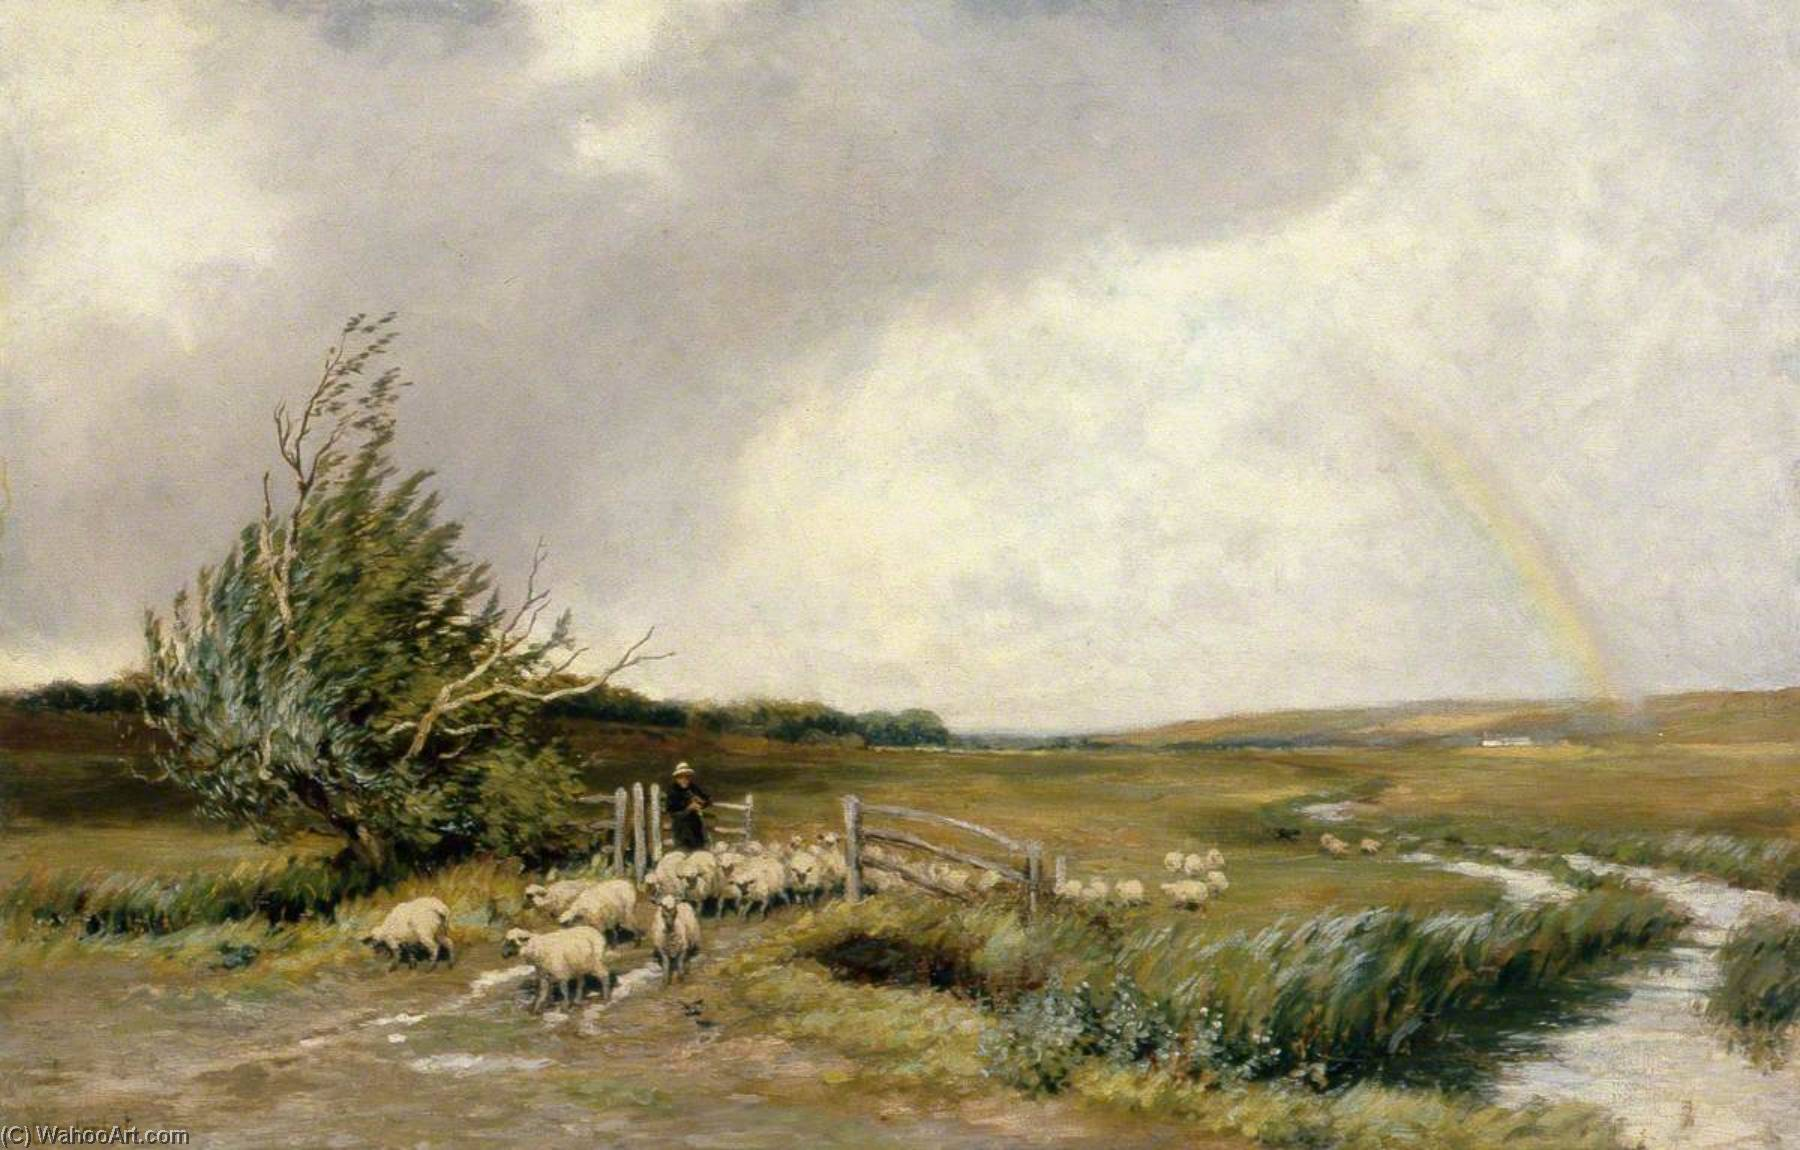 Landscape with a Rainbow and Sheep, Oil On Canvas by Clement Lambert